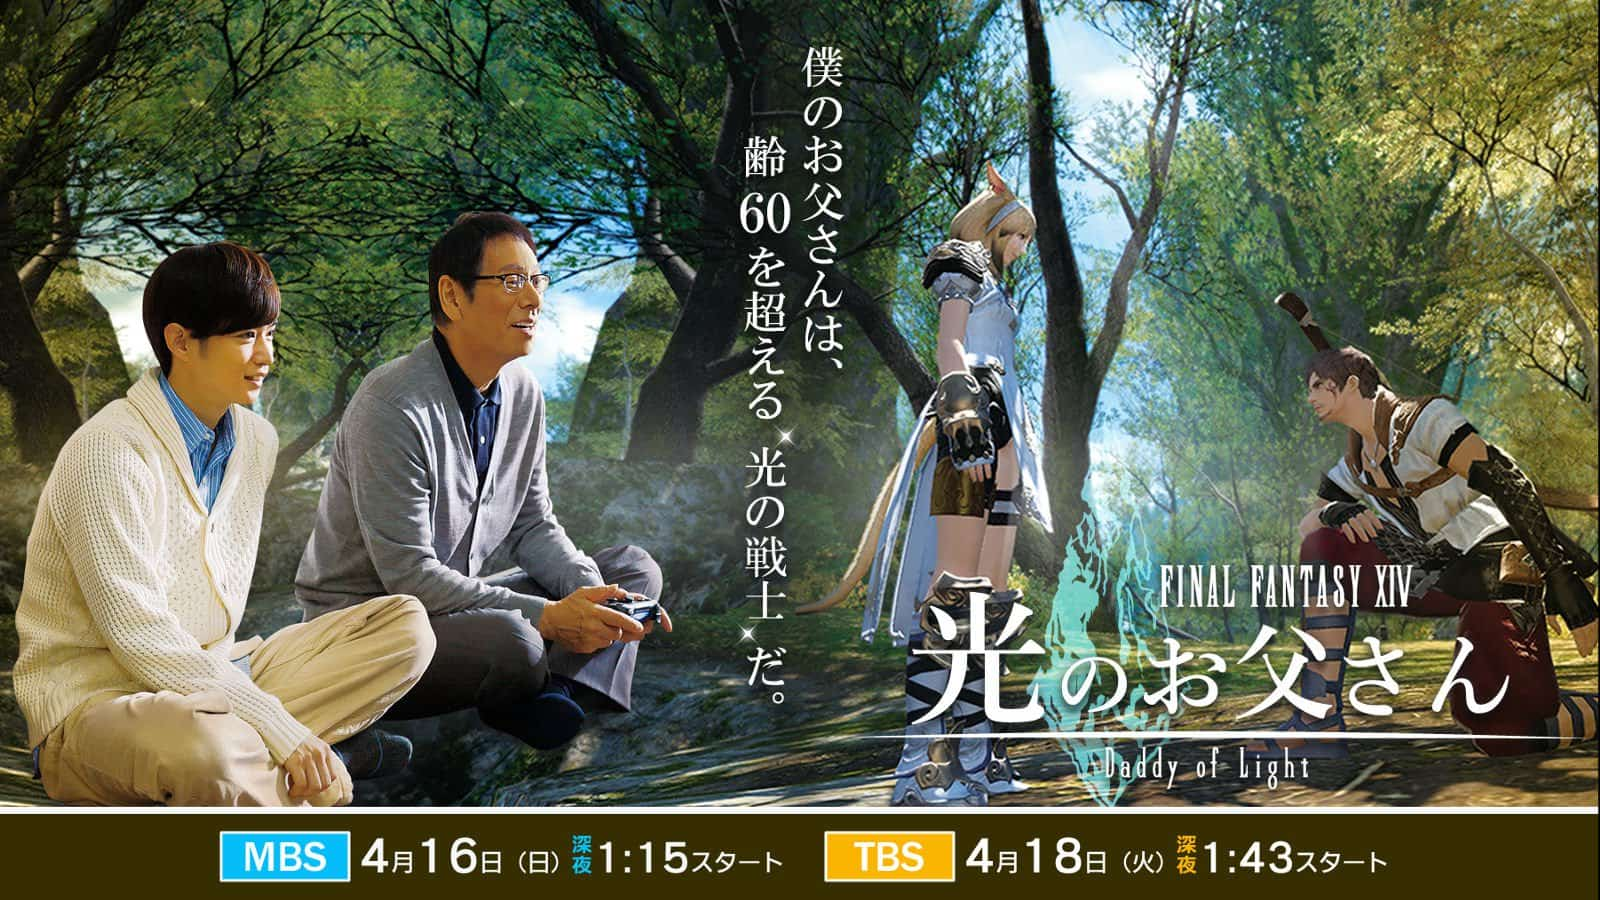 Daddy of Light, the Final Fantasy XIV Live Action drama, is heading